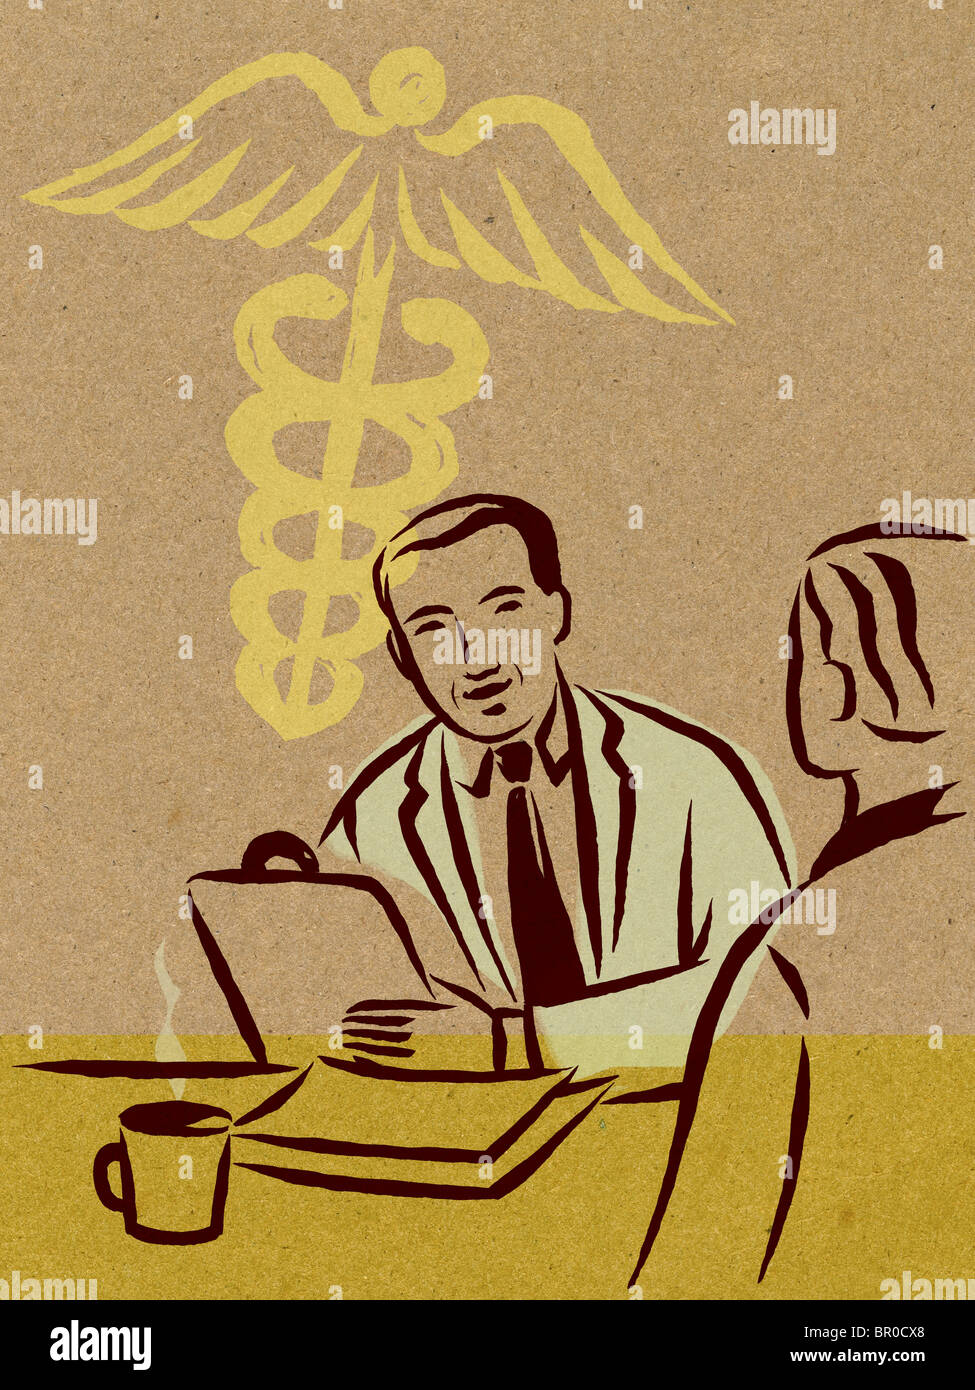 Illustration of two doctors having a discussion and a caduceus sign - Stock Image